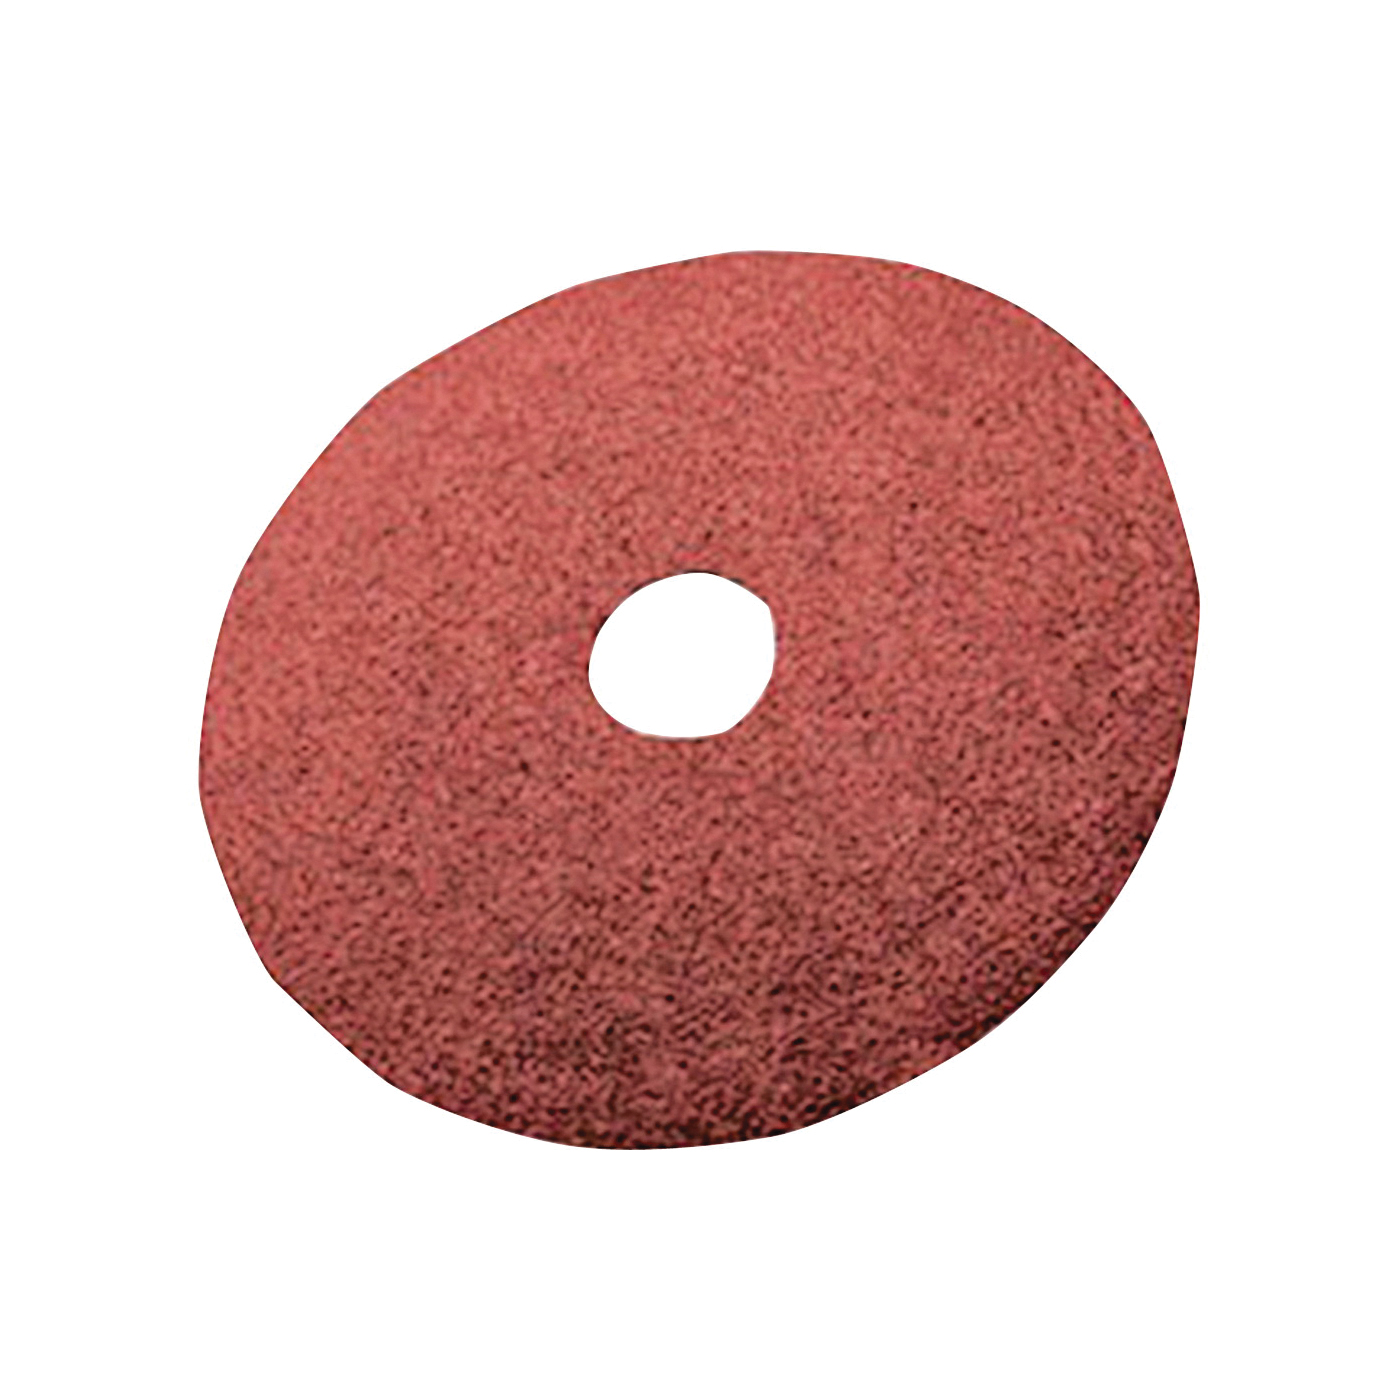 Picture of 3M 81373 Fiber Disc, 7 in Dia, 7/8 in Arbor, Coated, 36 Grit, Aluminum Oxide Abrasive, Fiber Backing